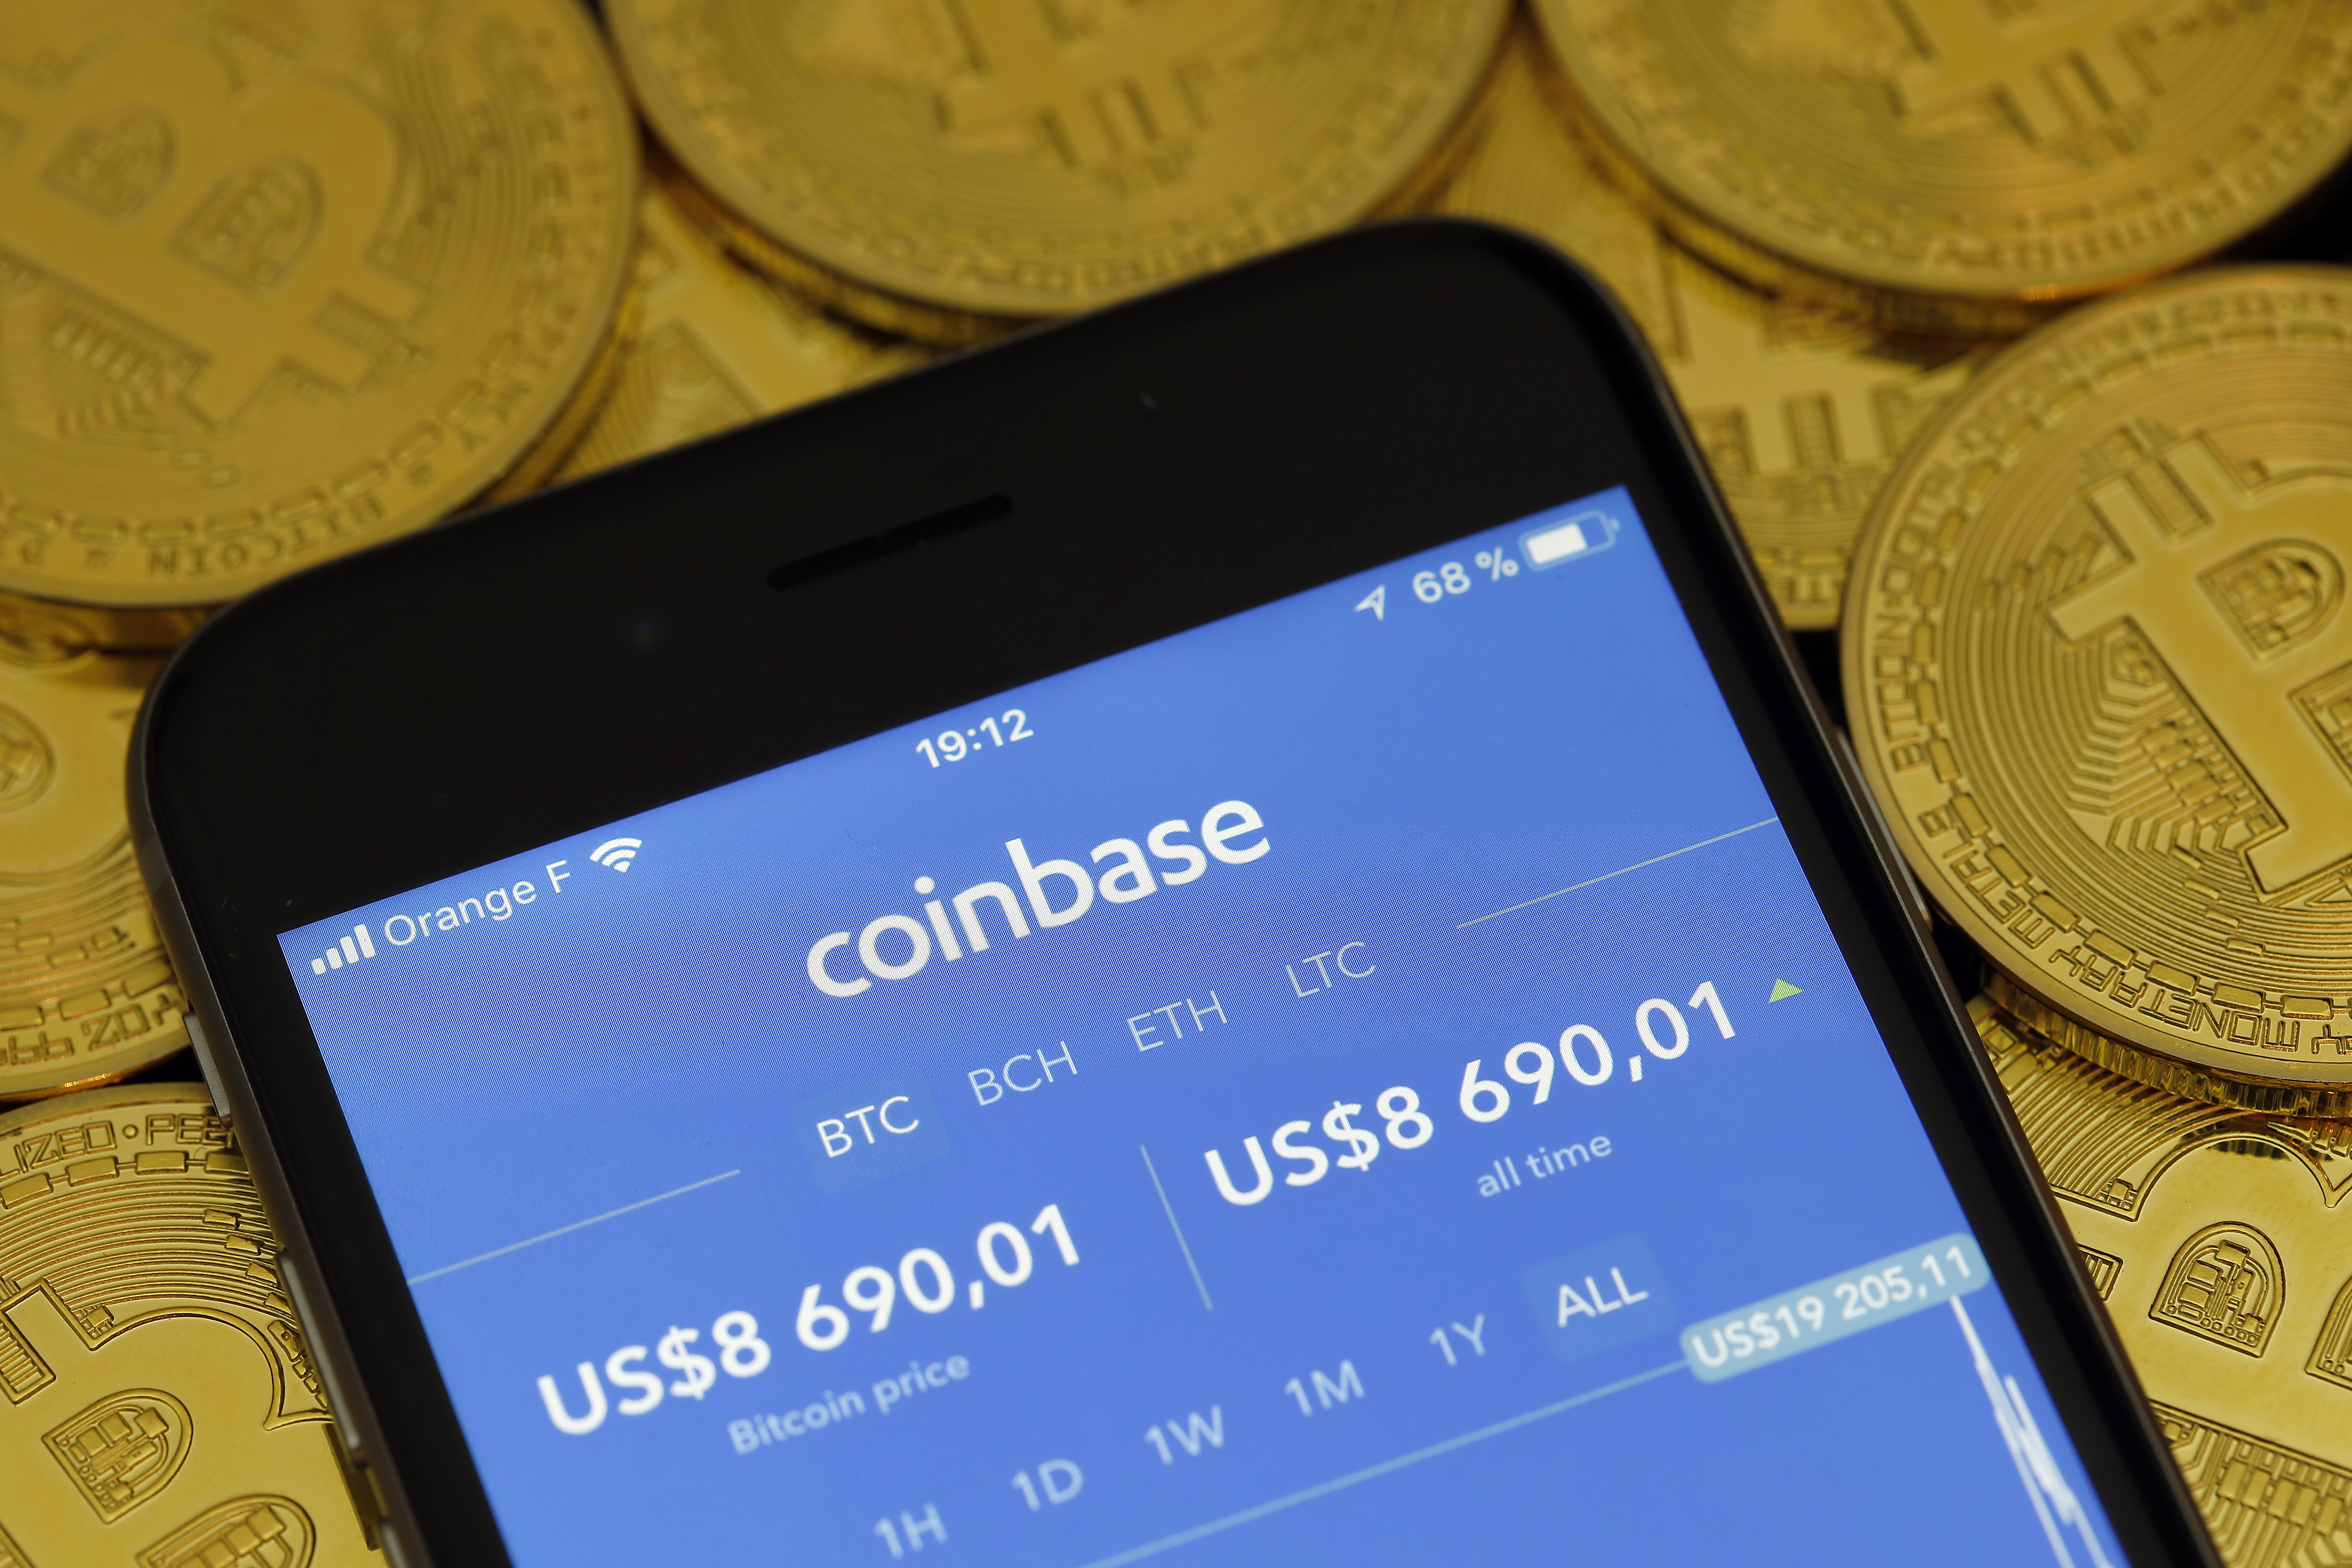 coinbase buy price higher